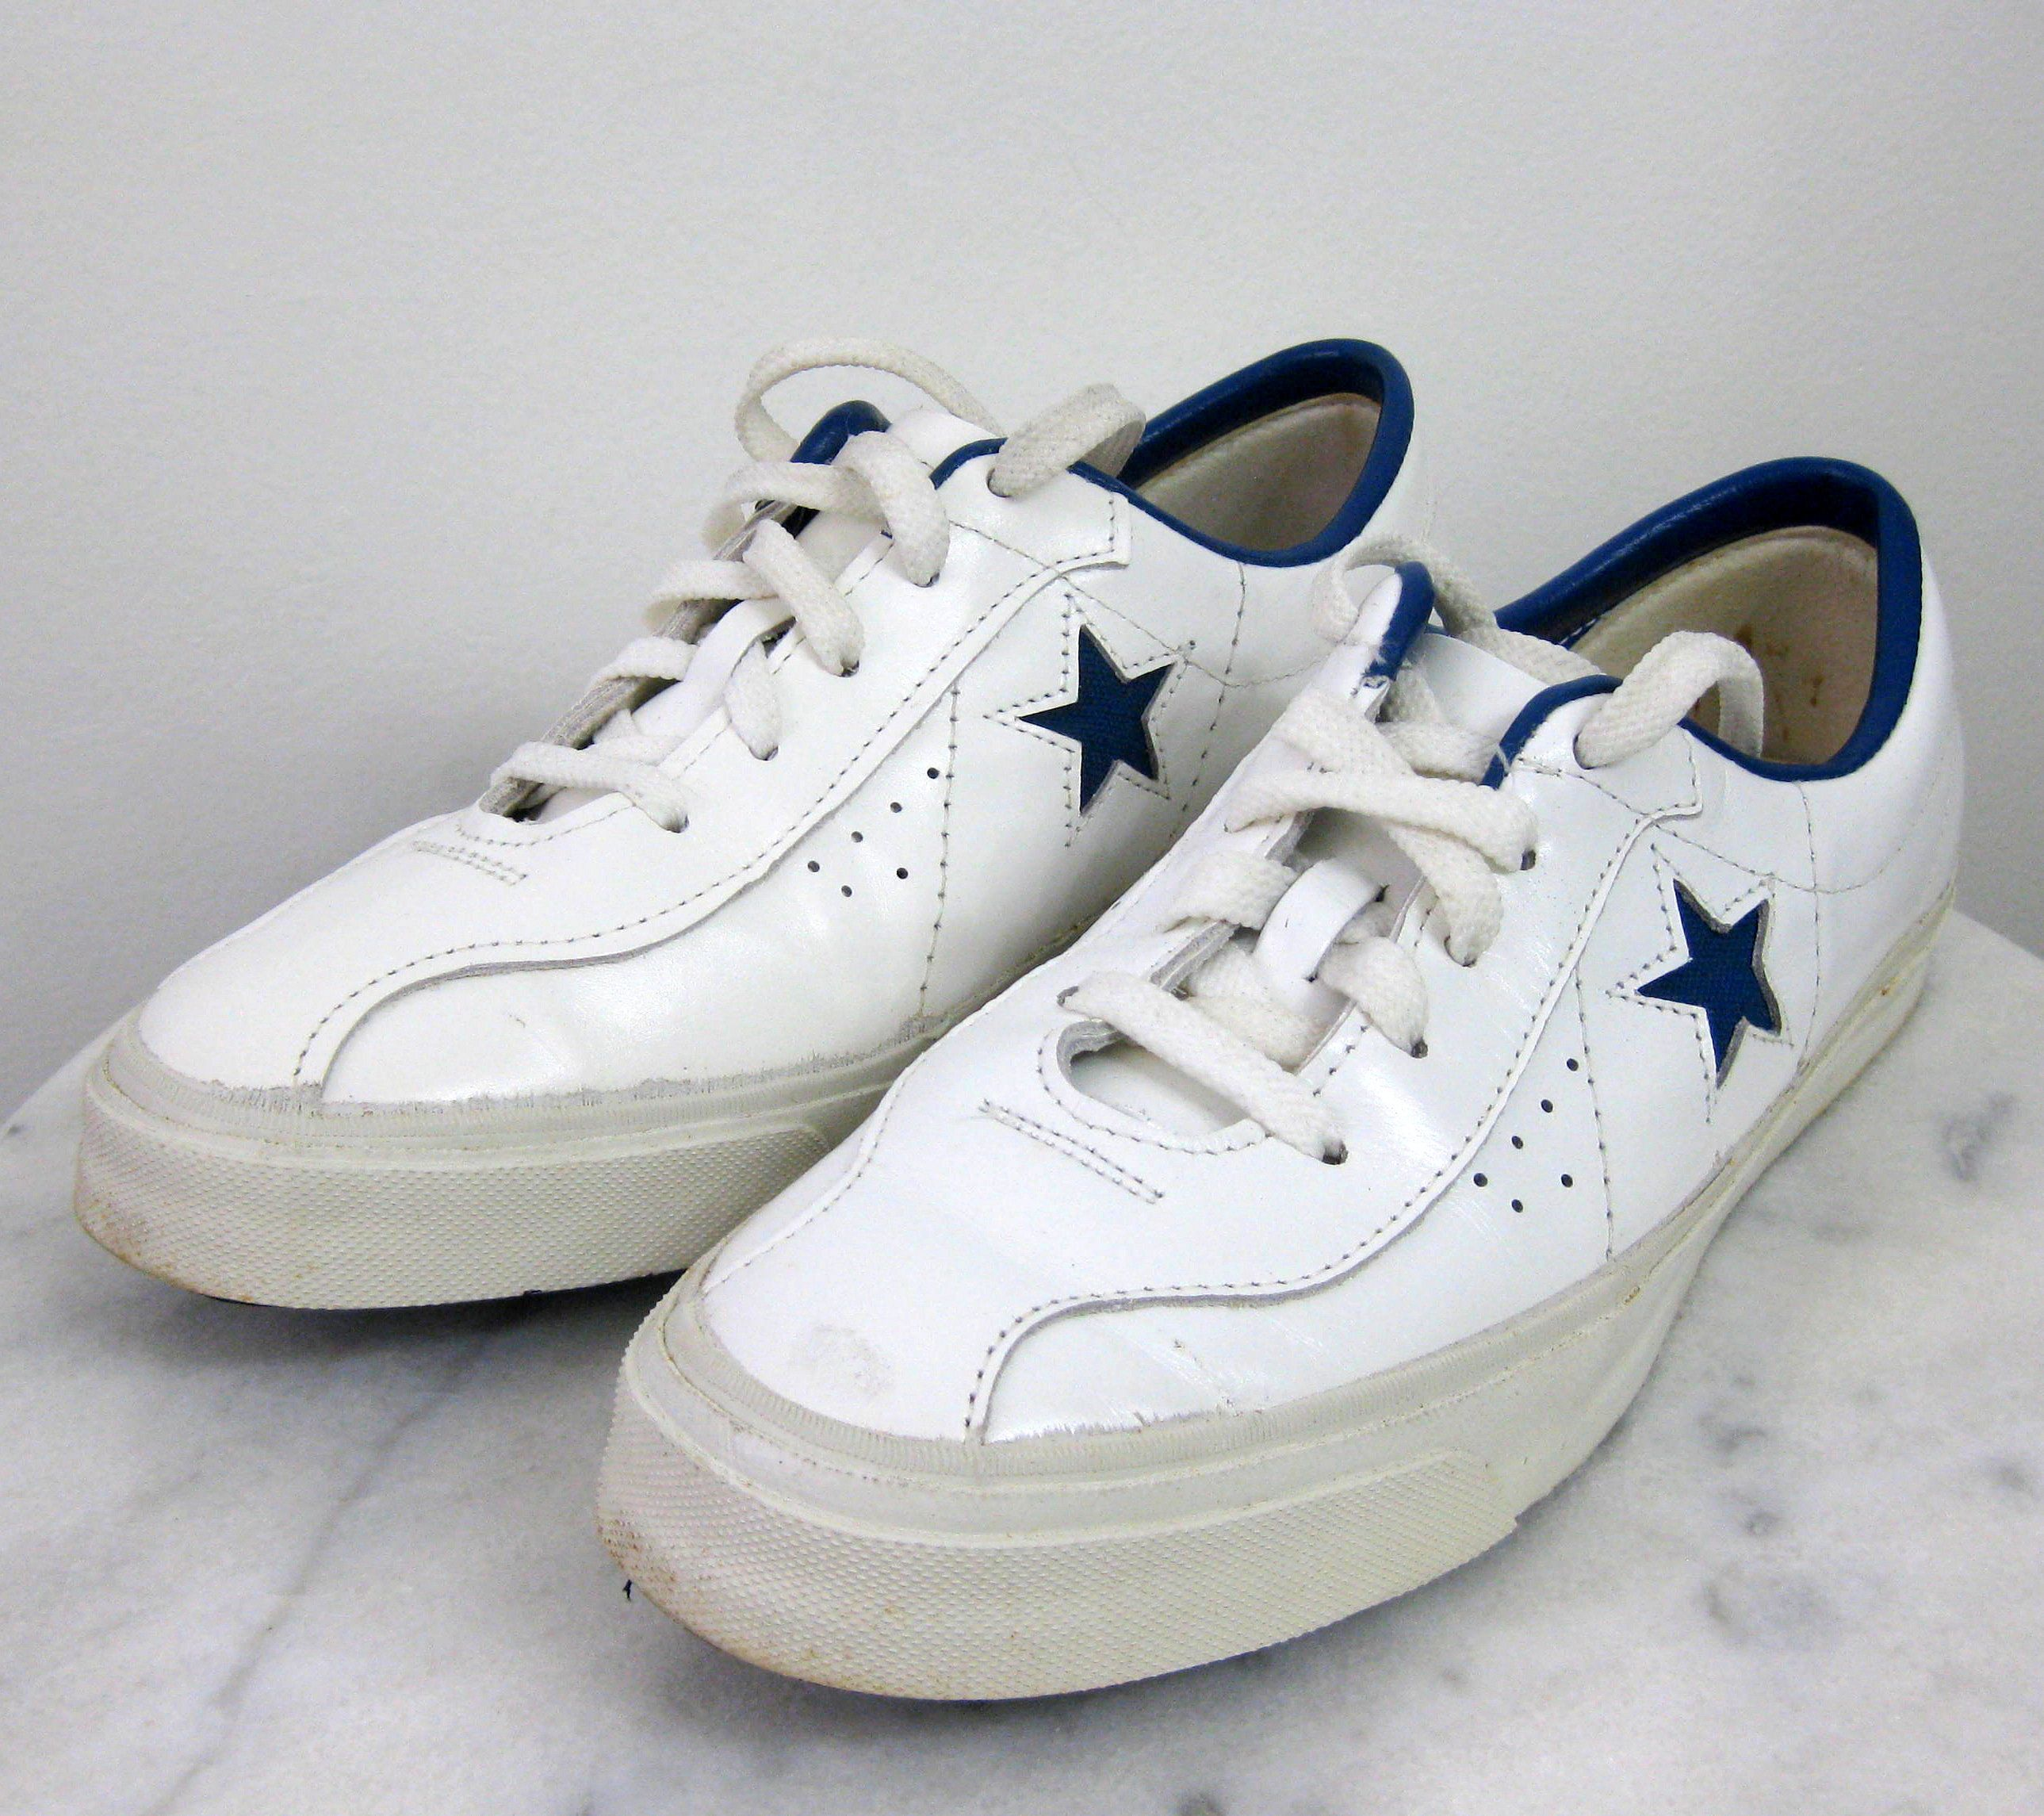 Descompostura cadena Rebajar  1974 Converse All Star Tennis Sneakers Size 7 White Leather One Blue Star  Rare in 2020 | Converse all star, Tennis sneakers, Converse